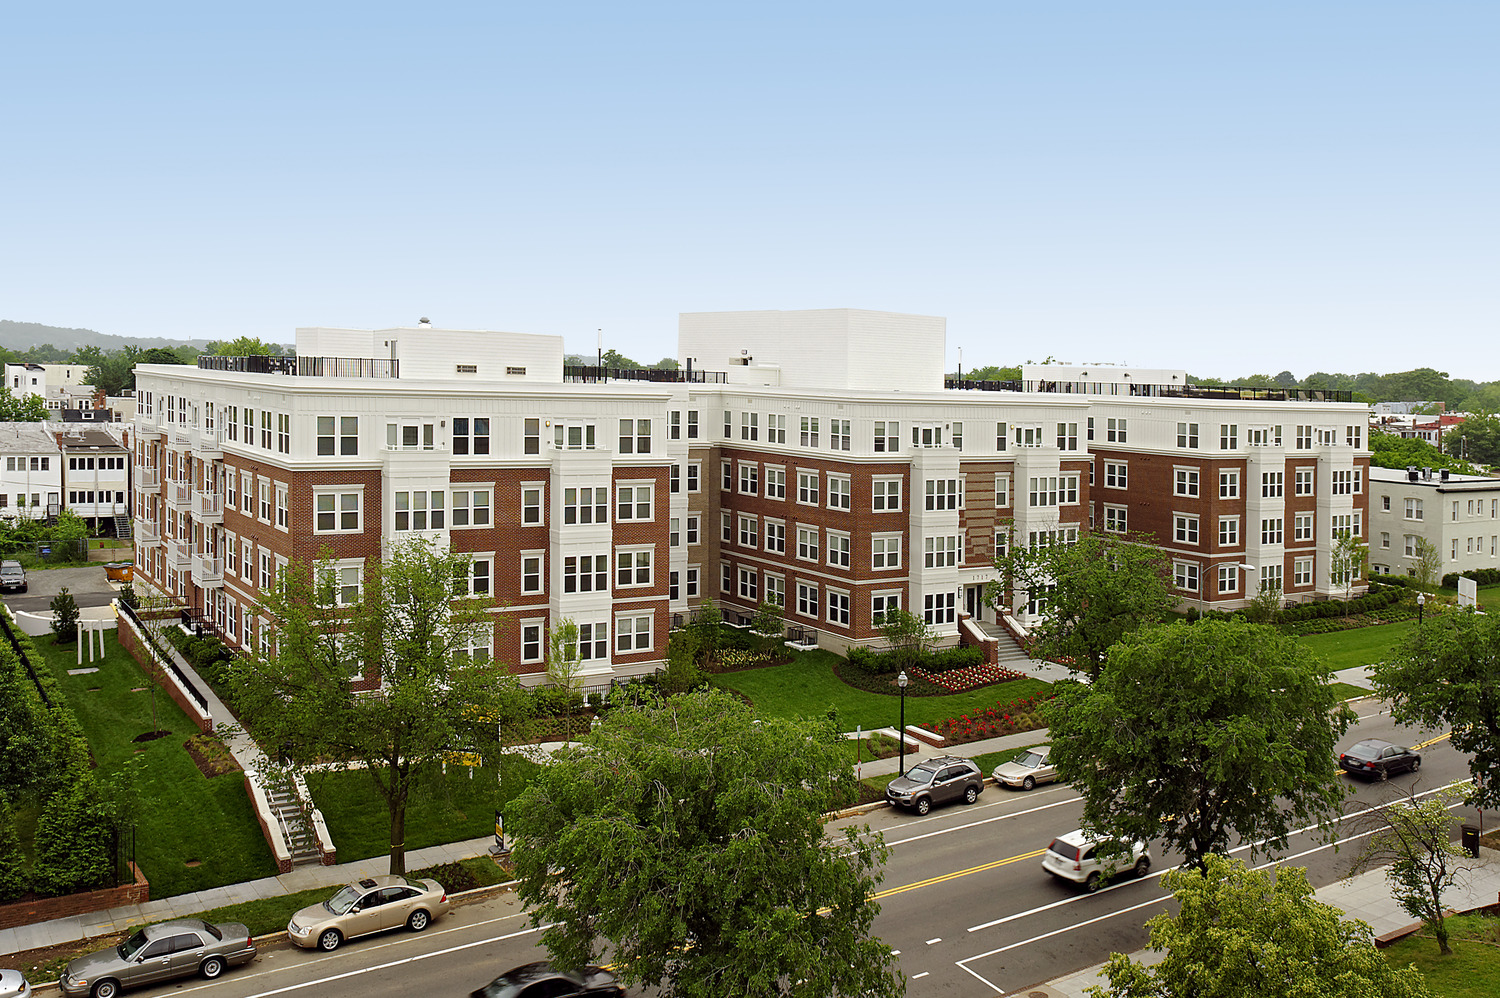 CBG builds Kennedy Row, a 142-Unit Luxury Apartment Community with Two-Story Underground Parking in Washington, DC - Image #3